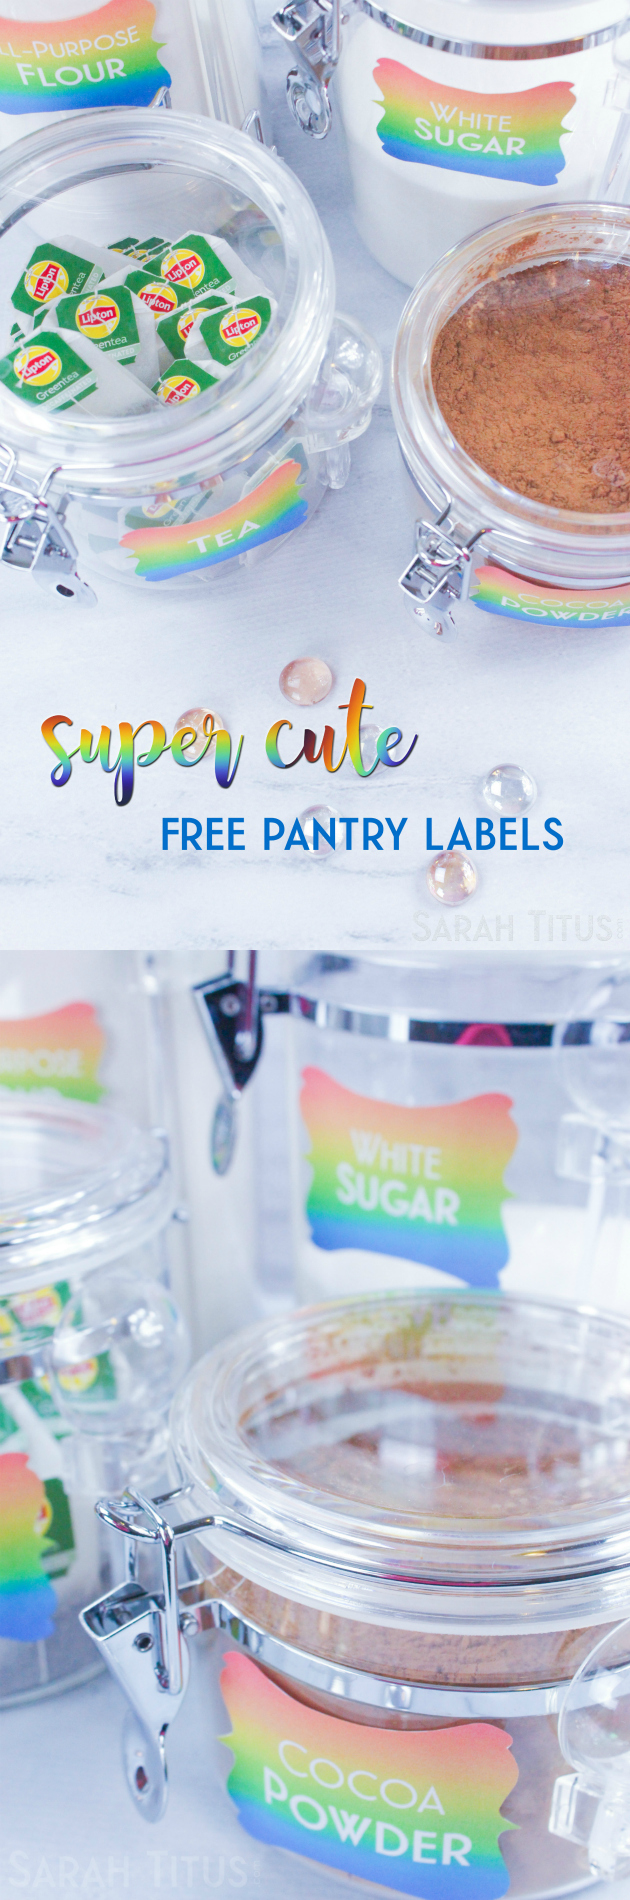 Is it just me or are all the free pantry labels dull and boring? Give your canisters some LIFE and pizzazz with these super CUTE, colorful free printable pantry labels!